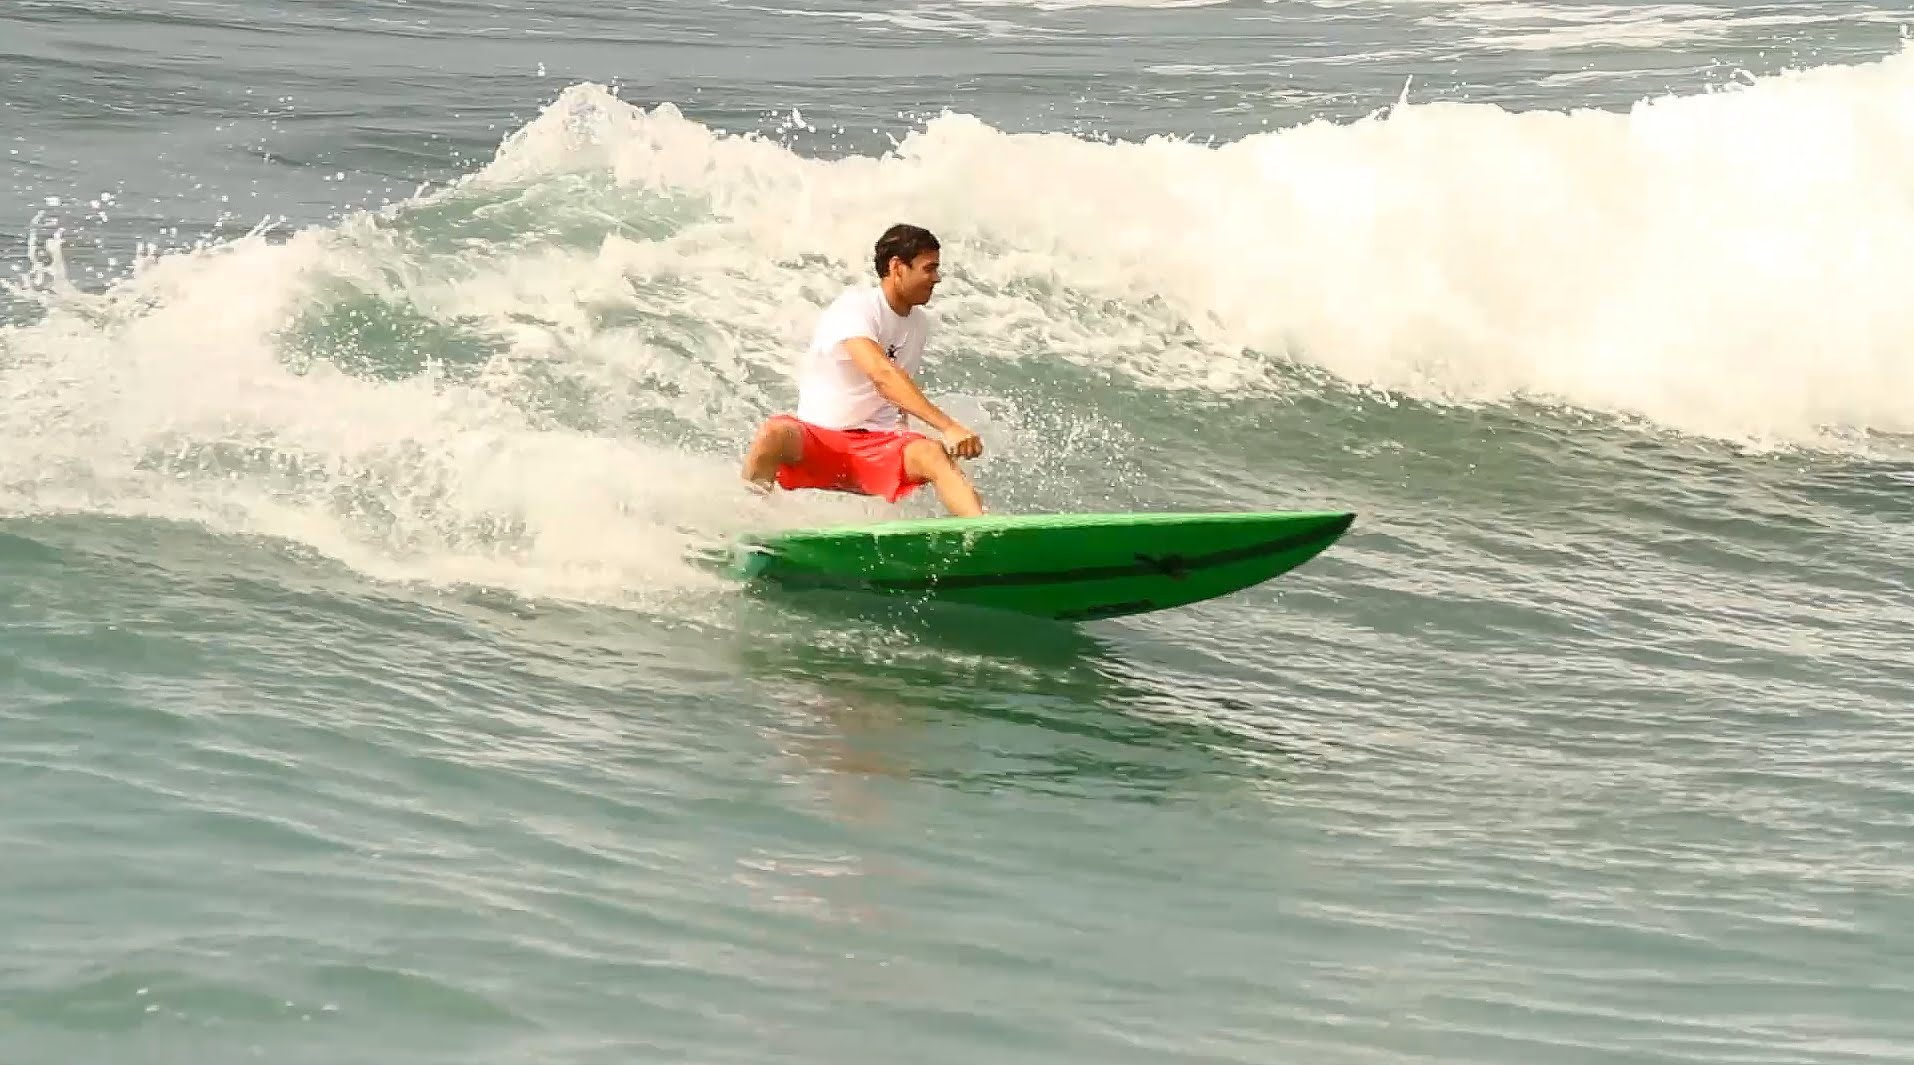 The Letourneur Brothers – California SUP Surf